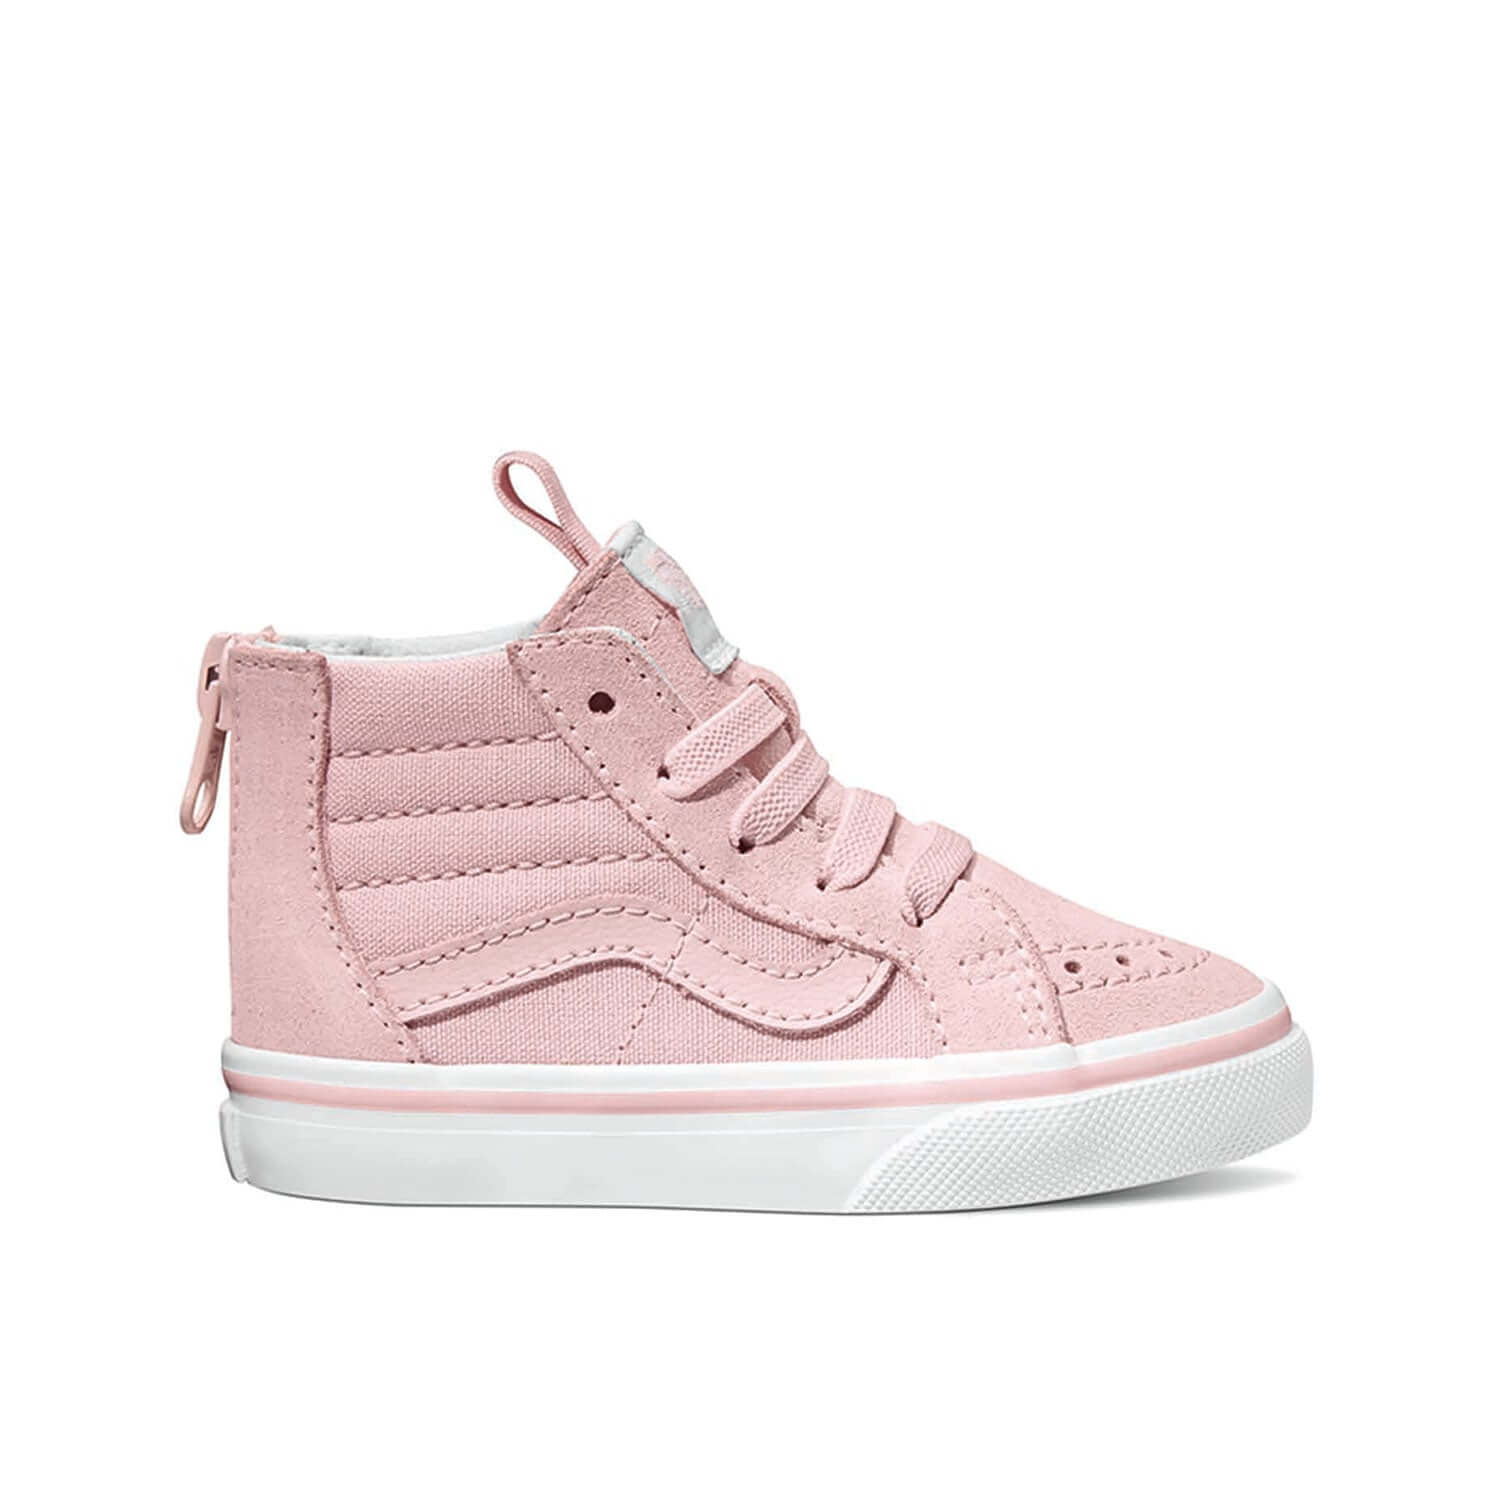 Vans Toddler SK8-Hi Zip Sneaker – Chalk Pink (9mths - 4yrs)  2f12fb6fe